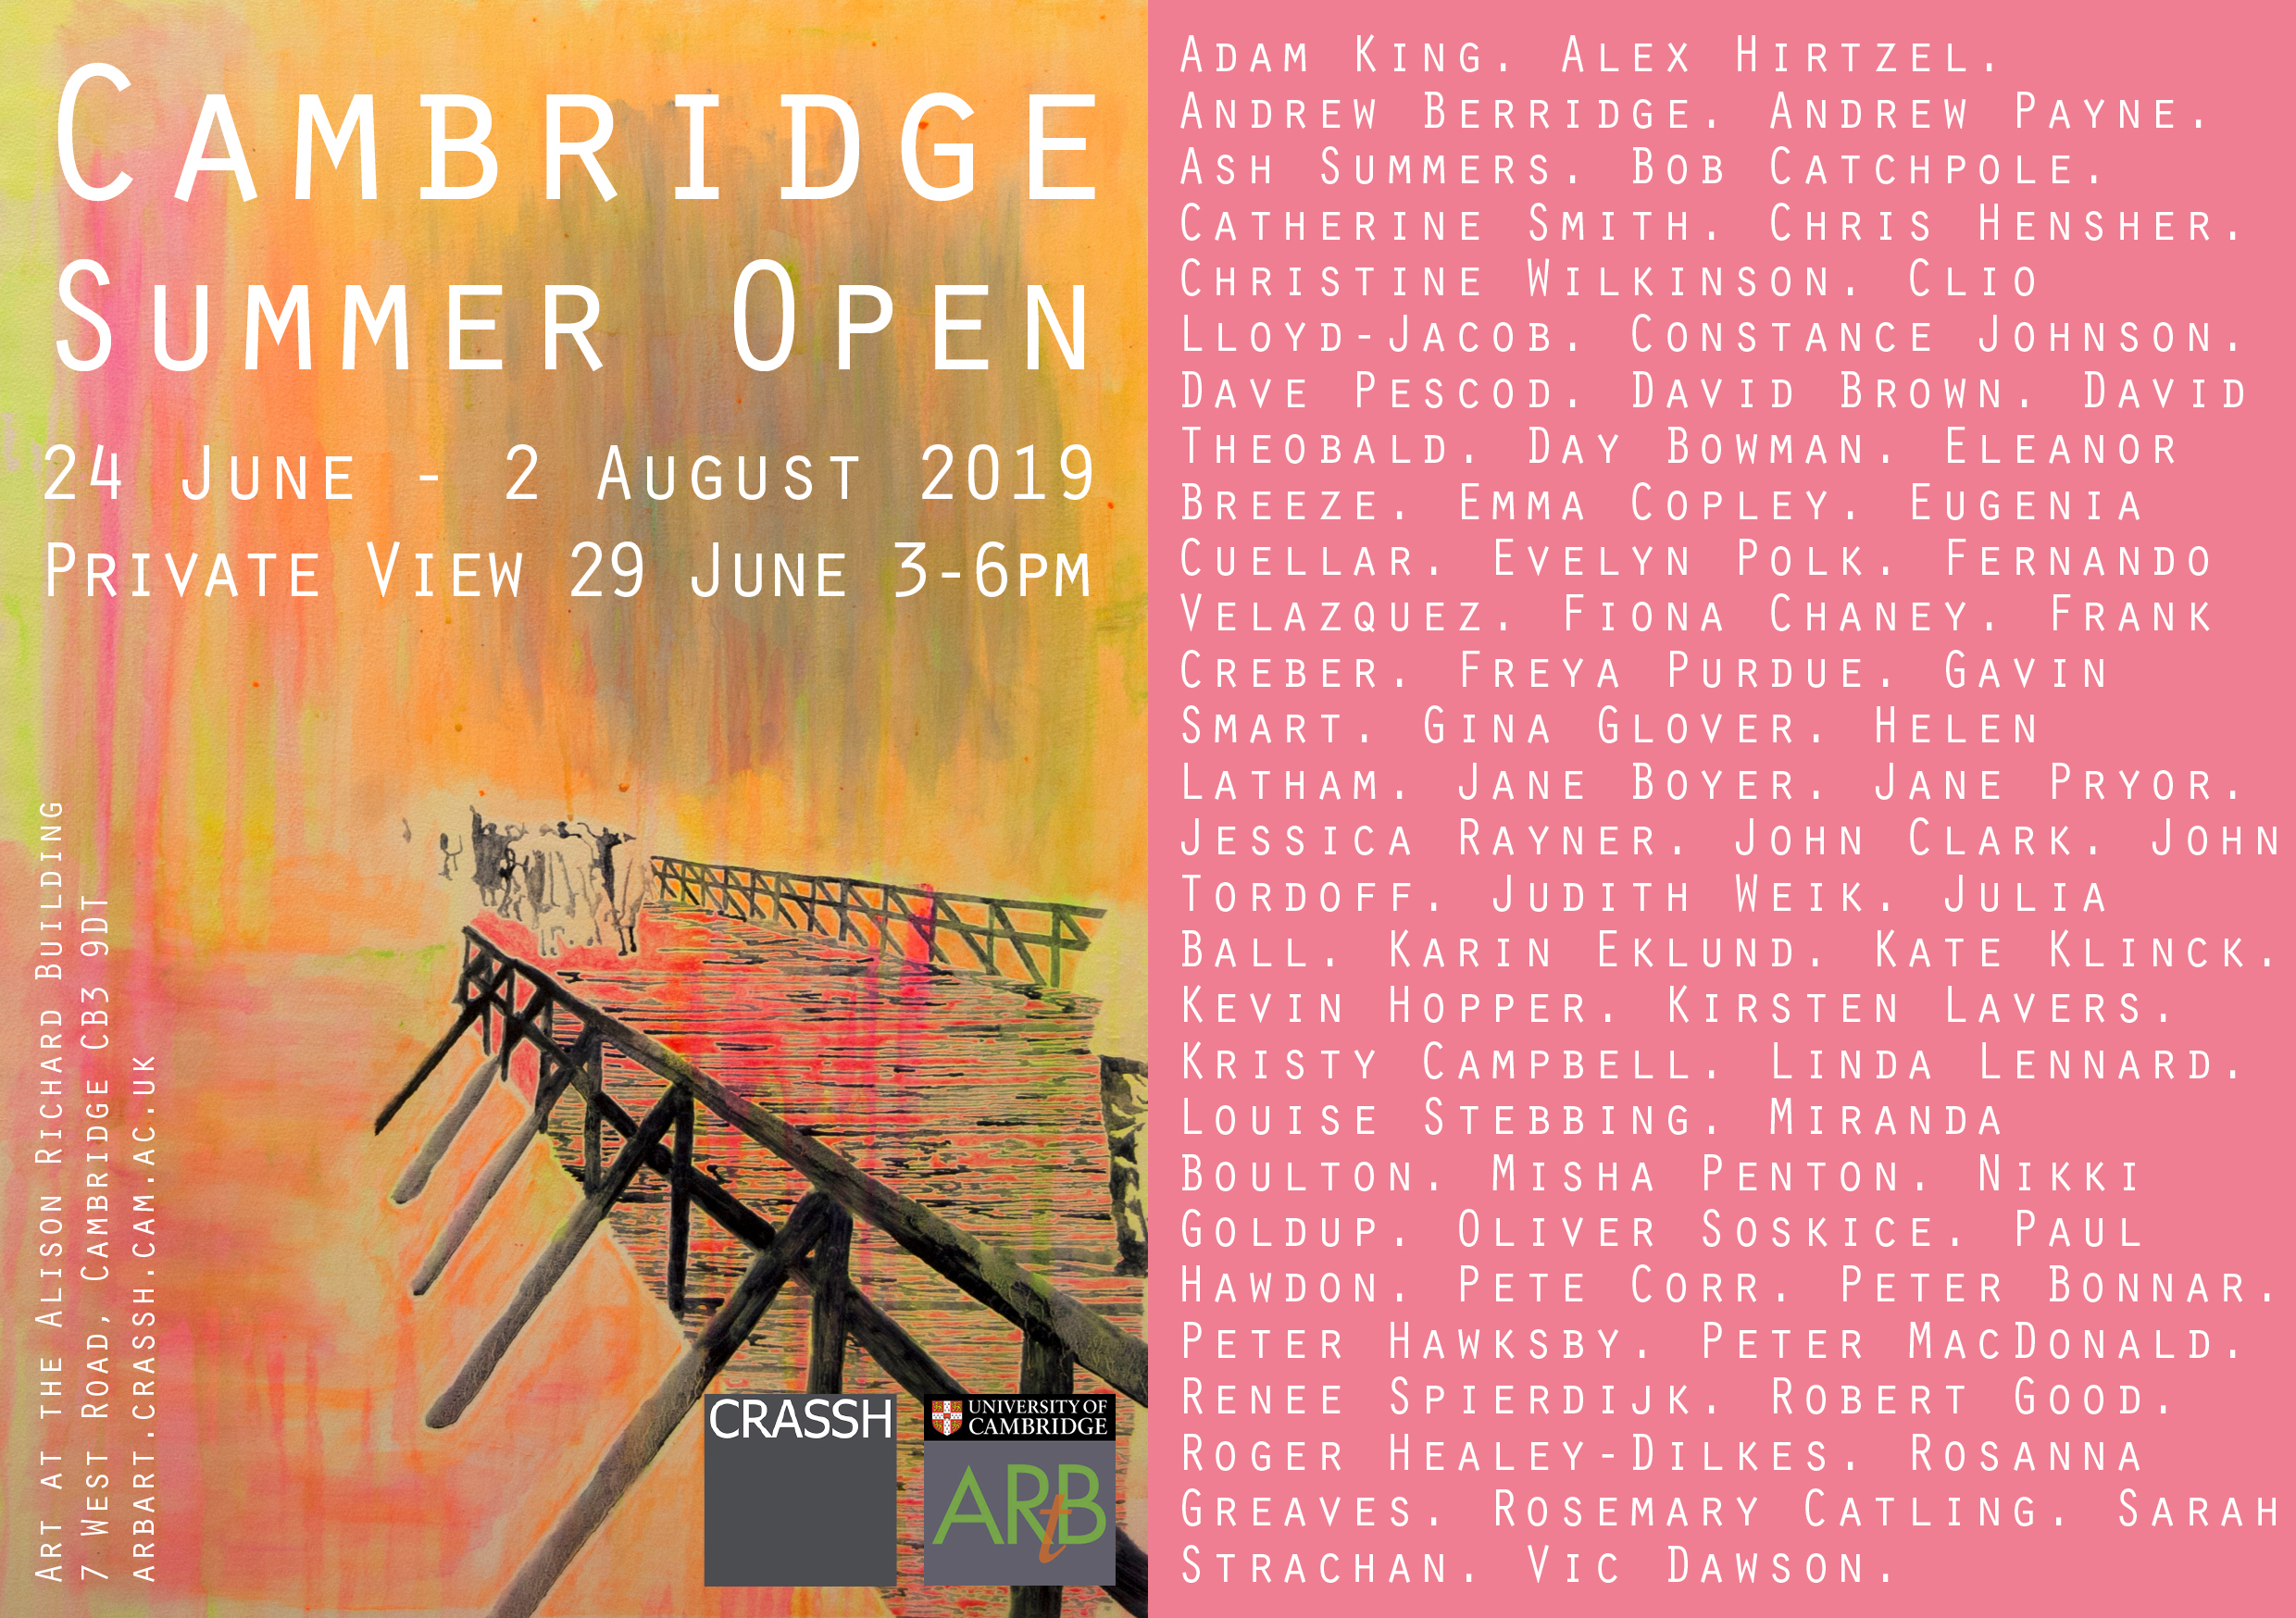 Cambridge Summer Open info